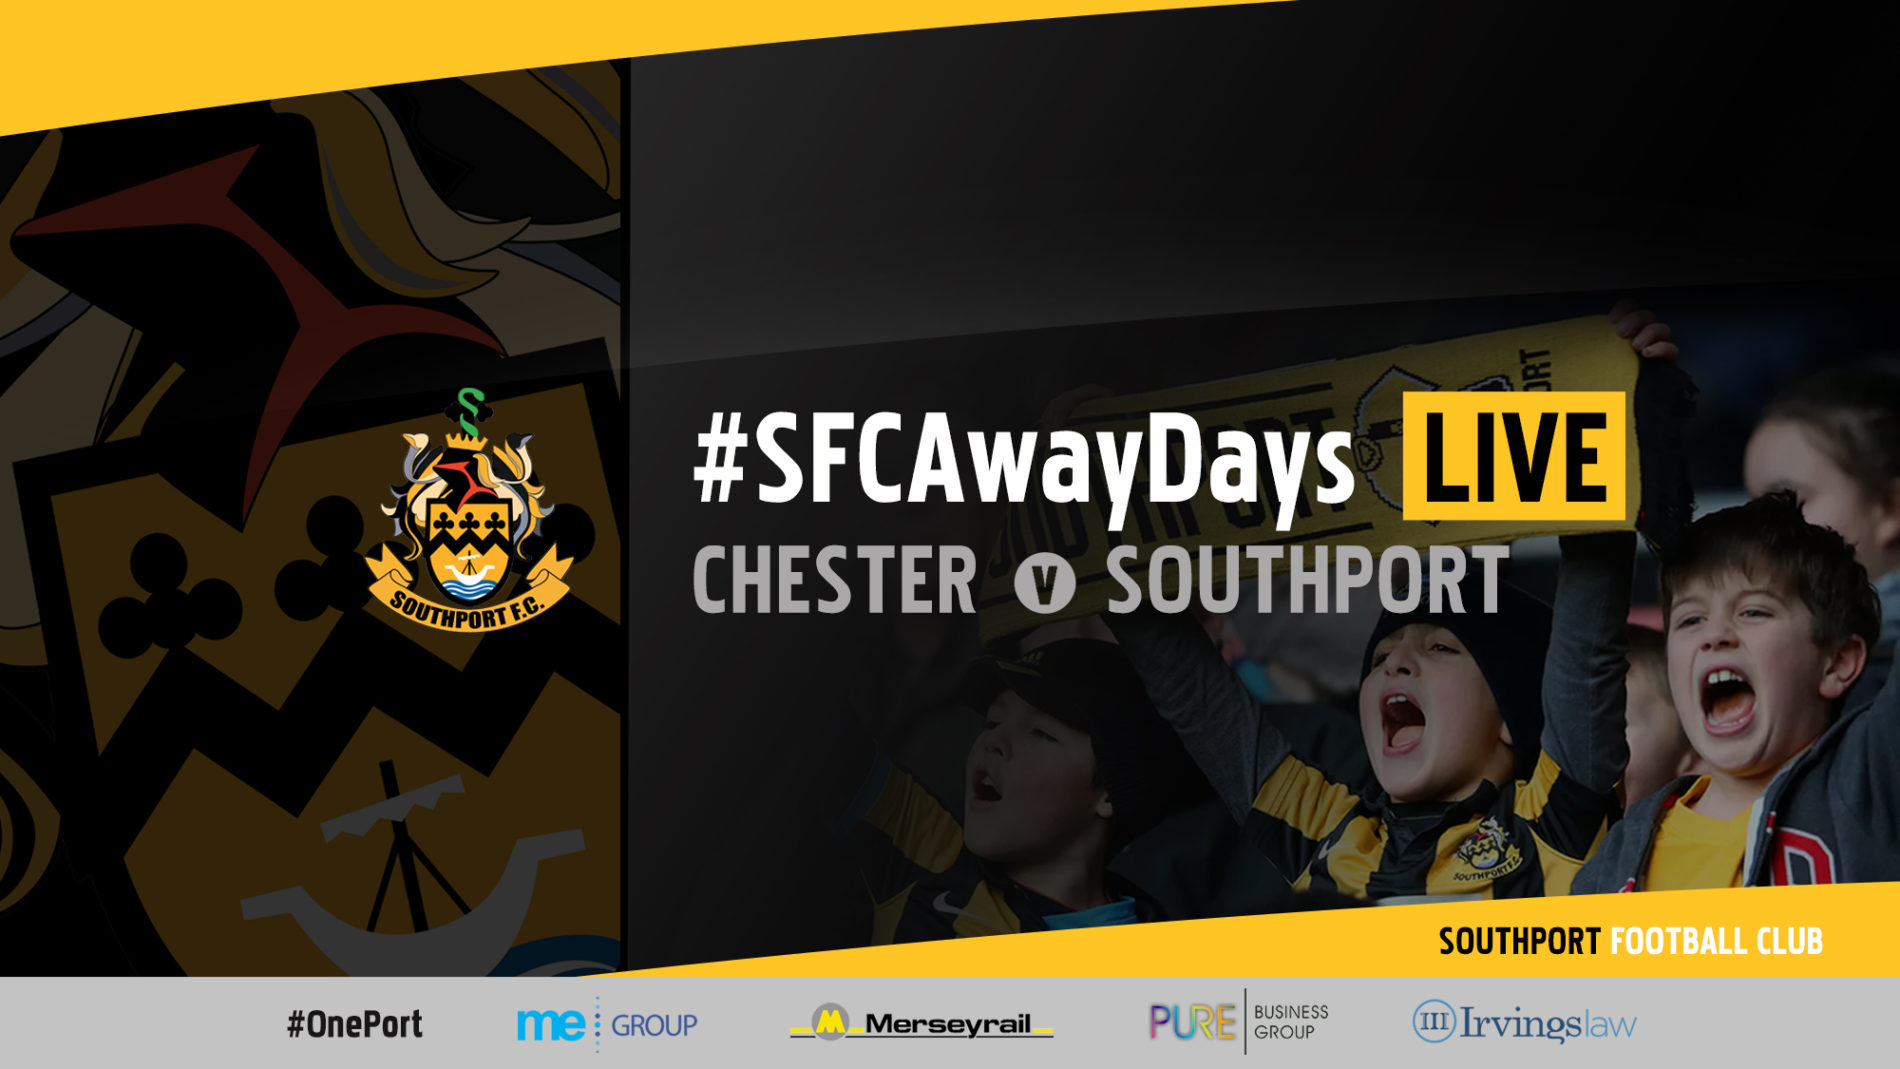 #SFCAwayDays LIVE | Chester v Southport